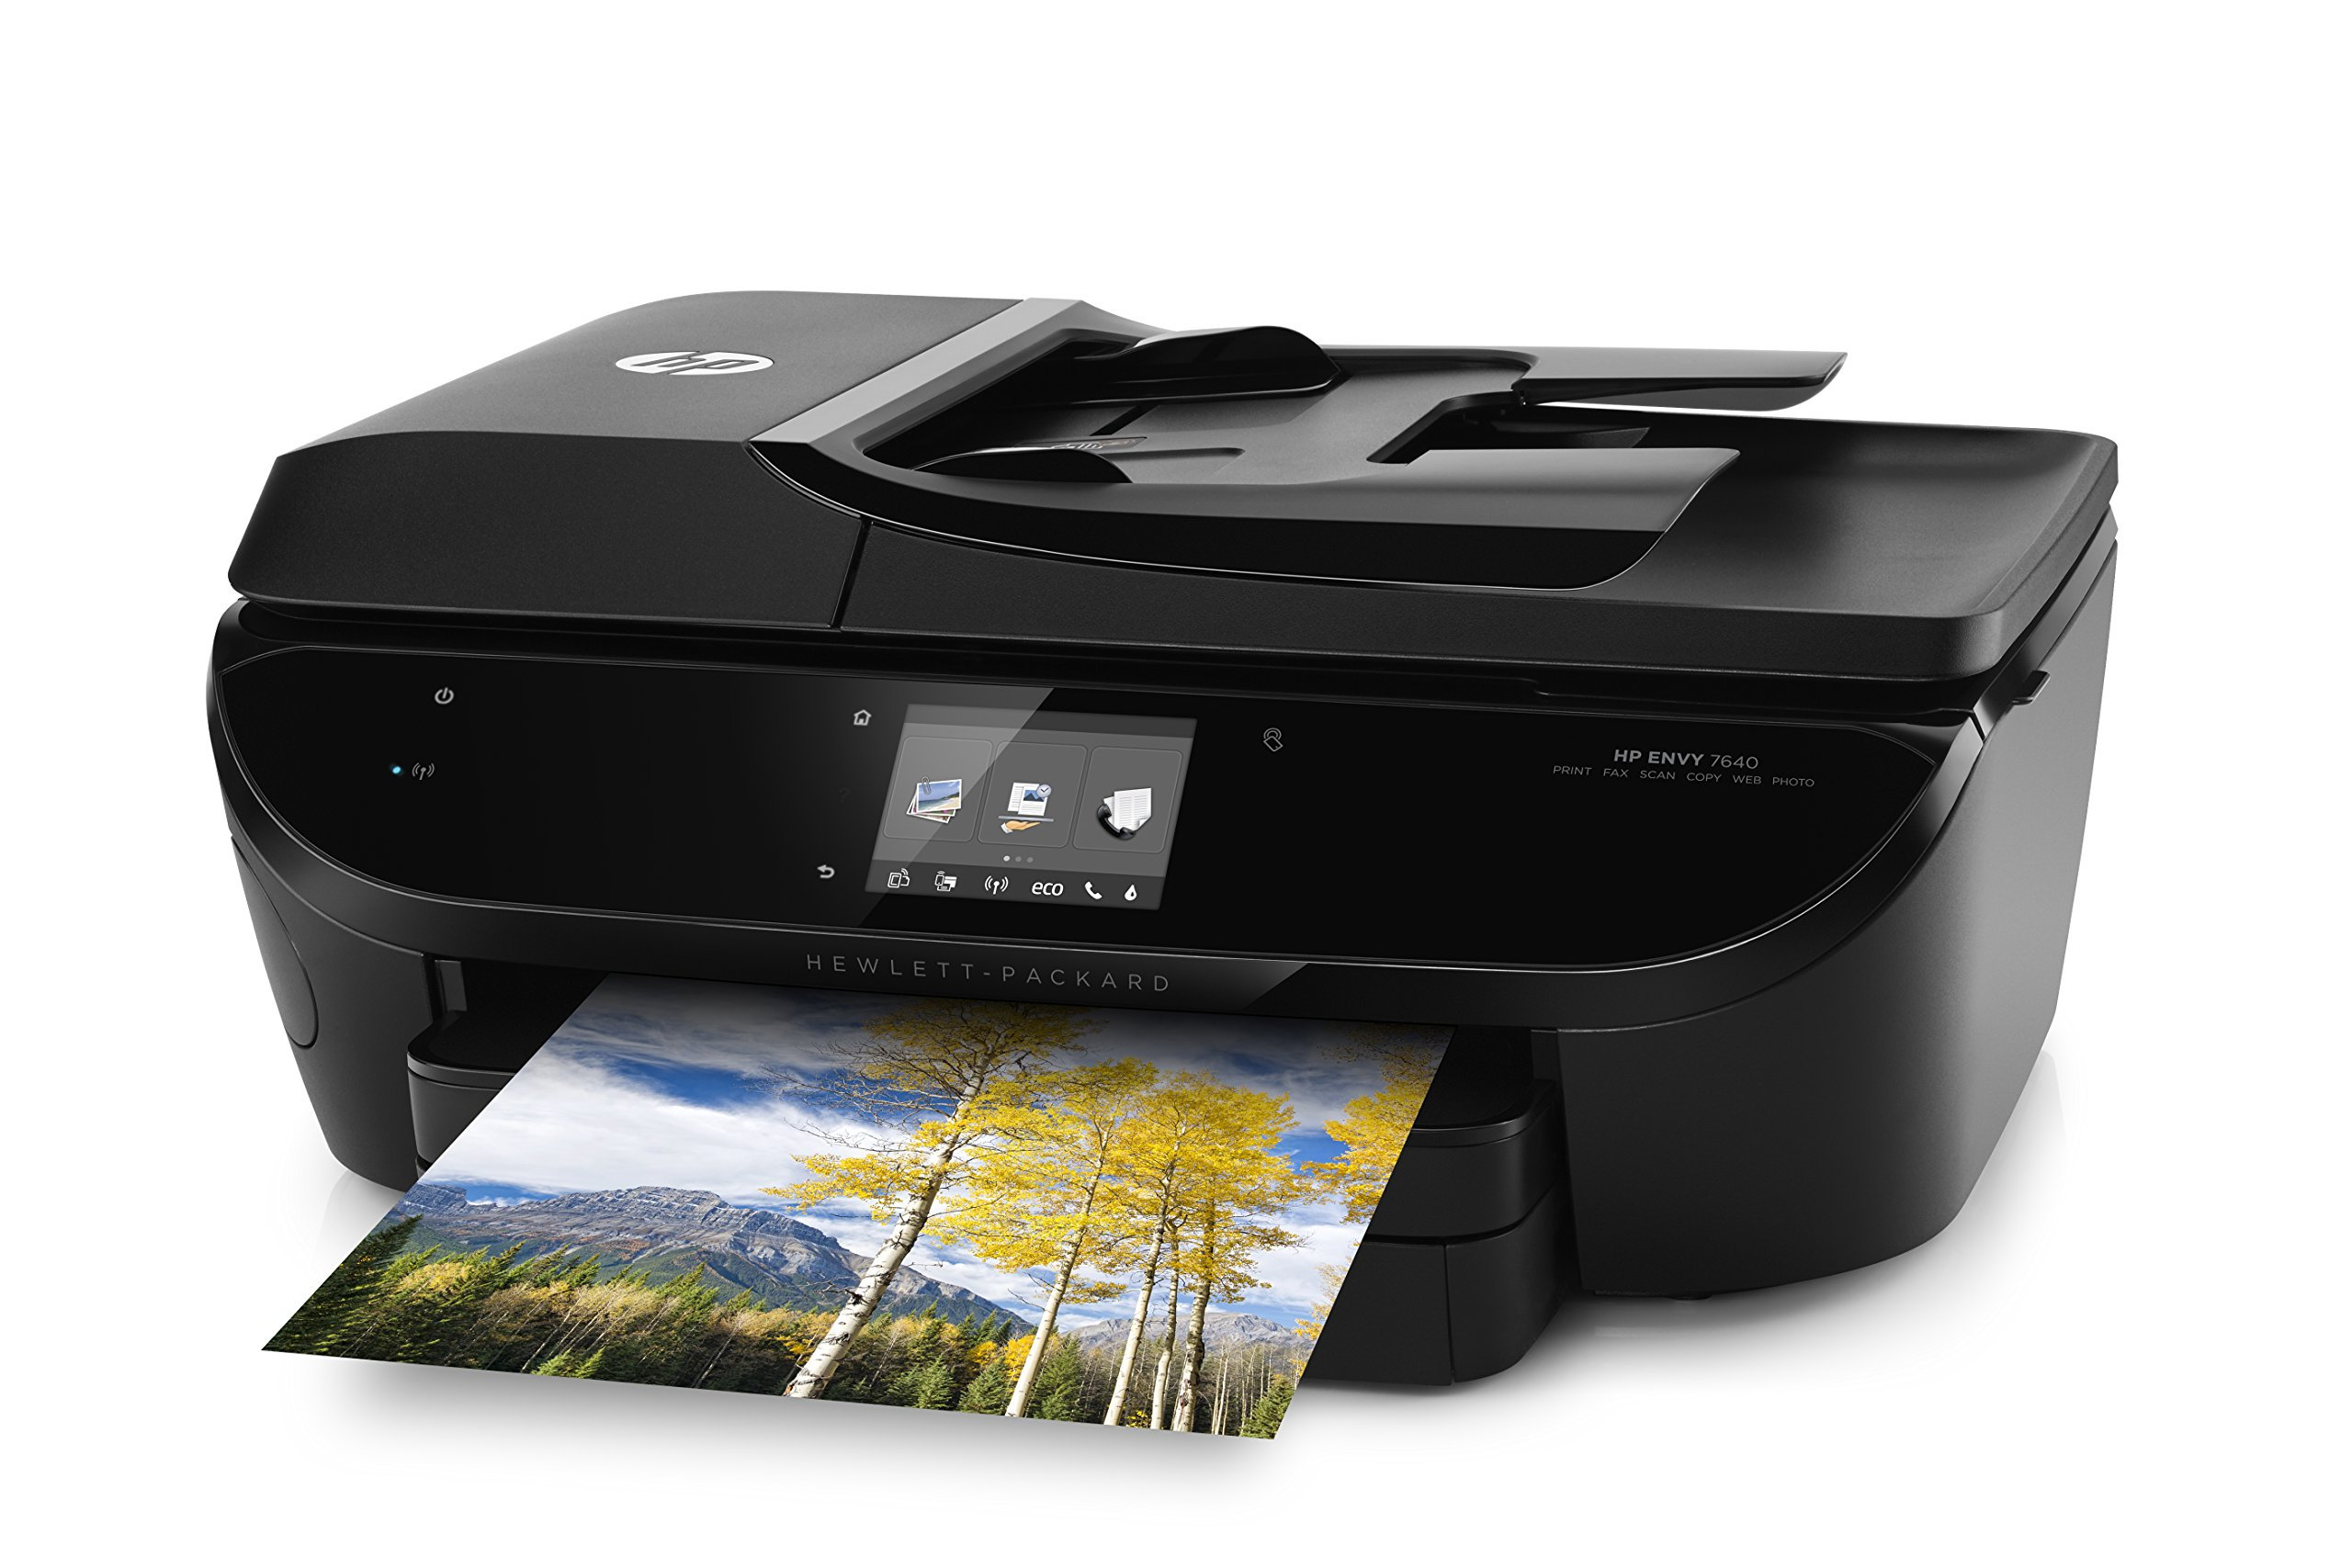 HP Envy 7640 Wireless All-in-One Photo Printer with Mobile Printing, Instant Ink ready (E4W43A) by HP (Image #4)